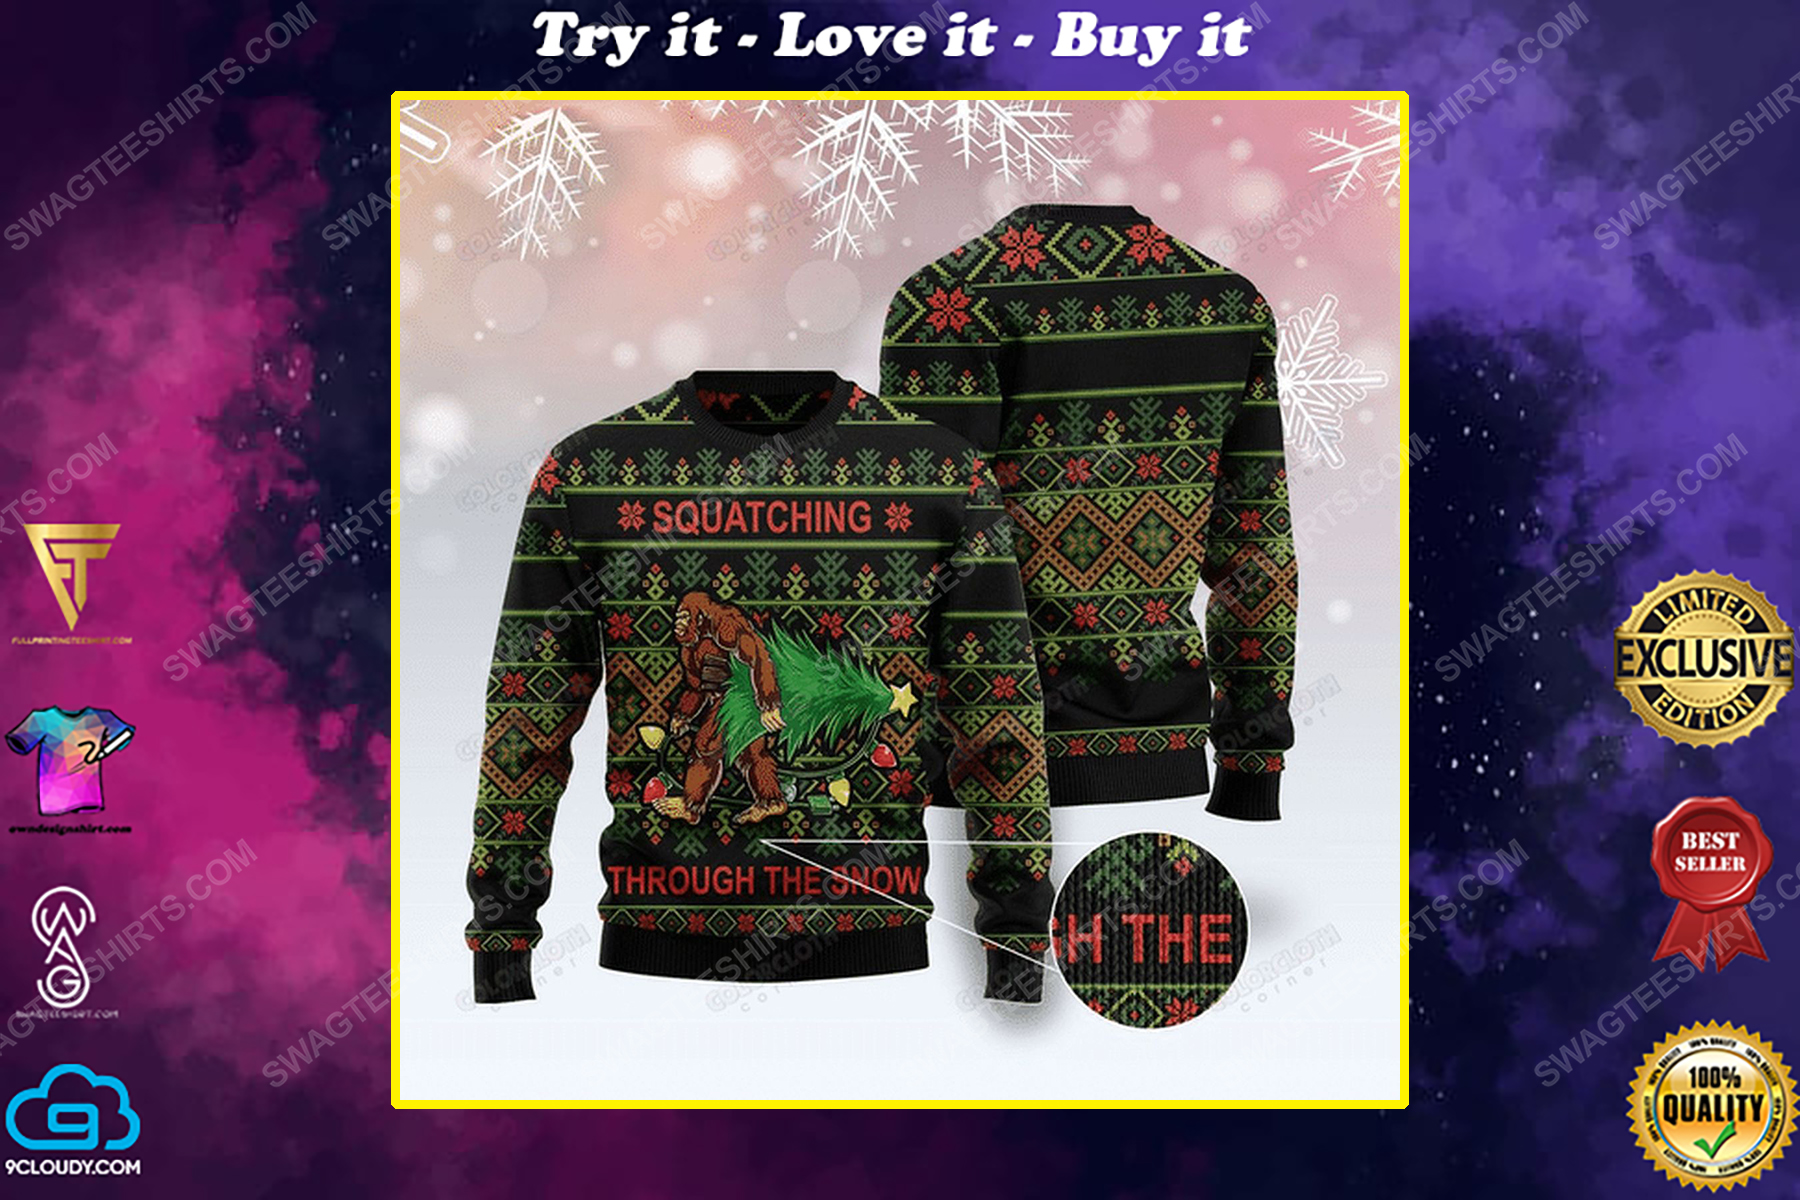 Bigfoot squatching through the snow ugly christmas sweater 1